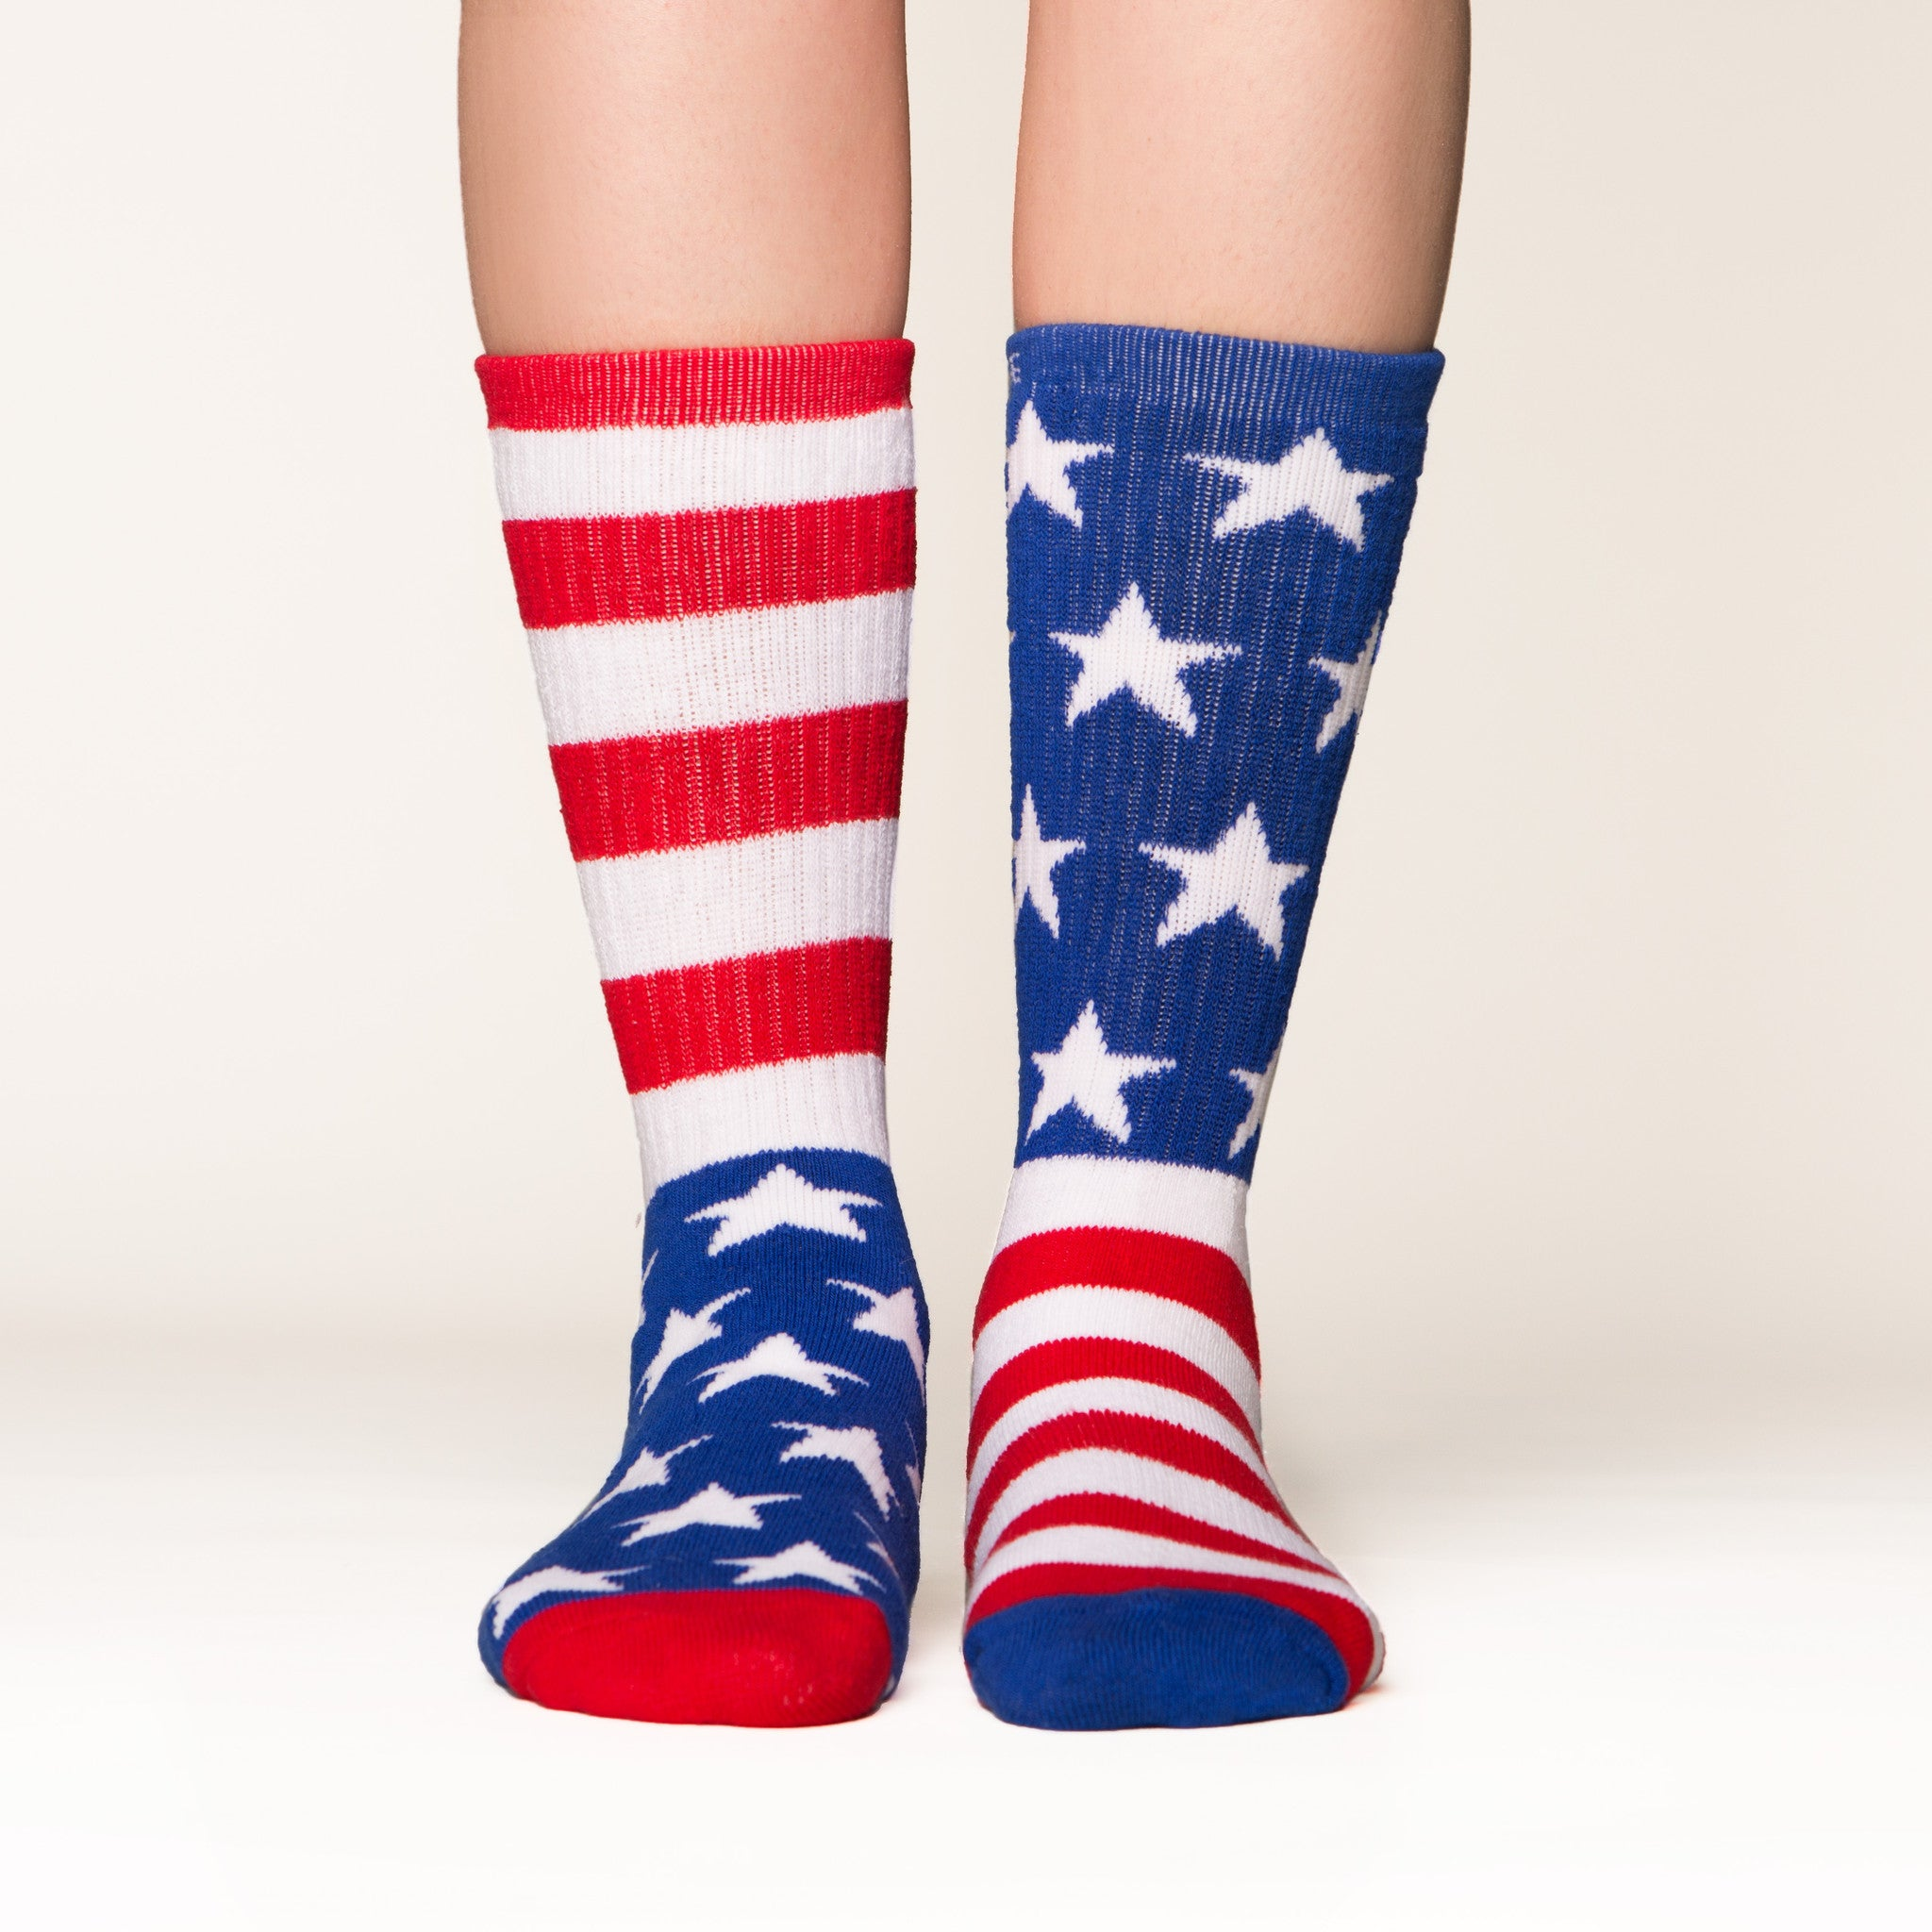 American Flag socks front view